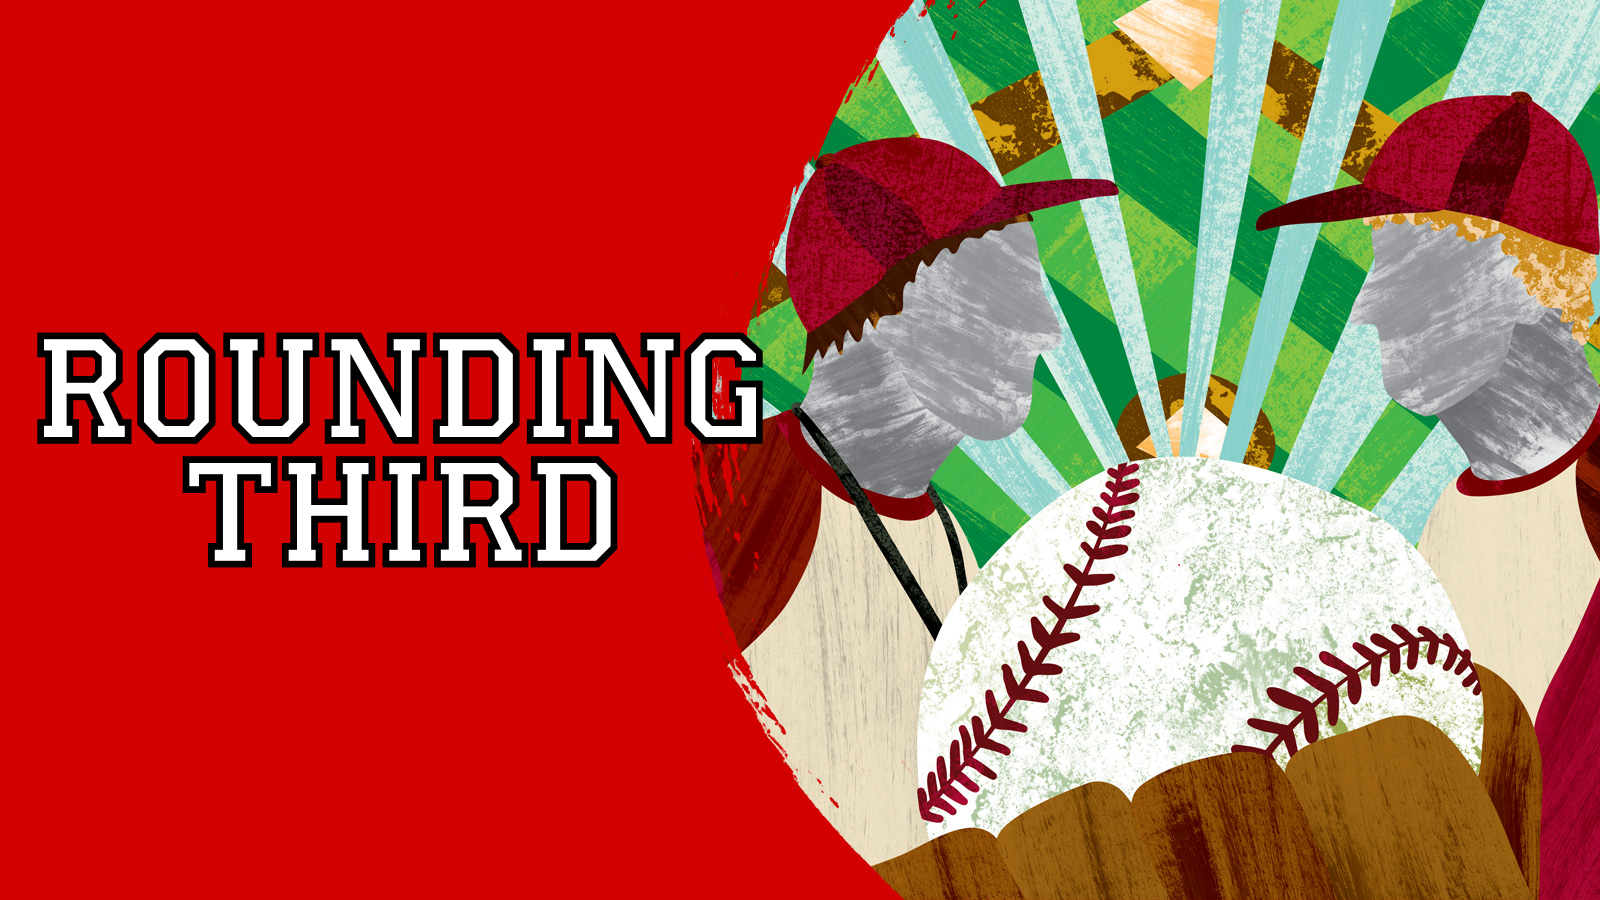 "Cardinal Stage's 'Rounding Third' is a sharp comedy about two Little League coaches who ""act more childish than the kids they coach!"" says Director Matt Decker. Writer Julie Warren calls it ""a complex show, with developed characters and realistic conflict that make the jokes hit even harder."""